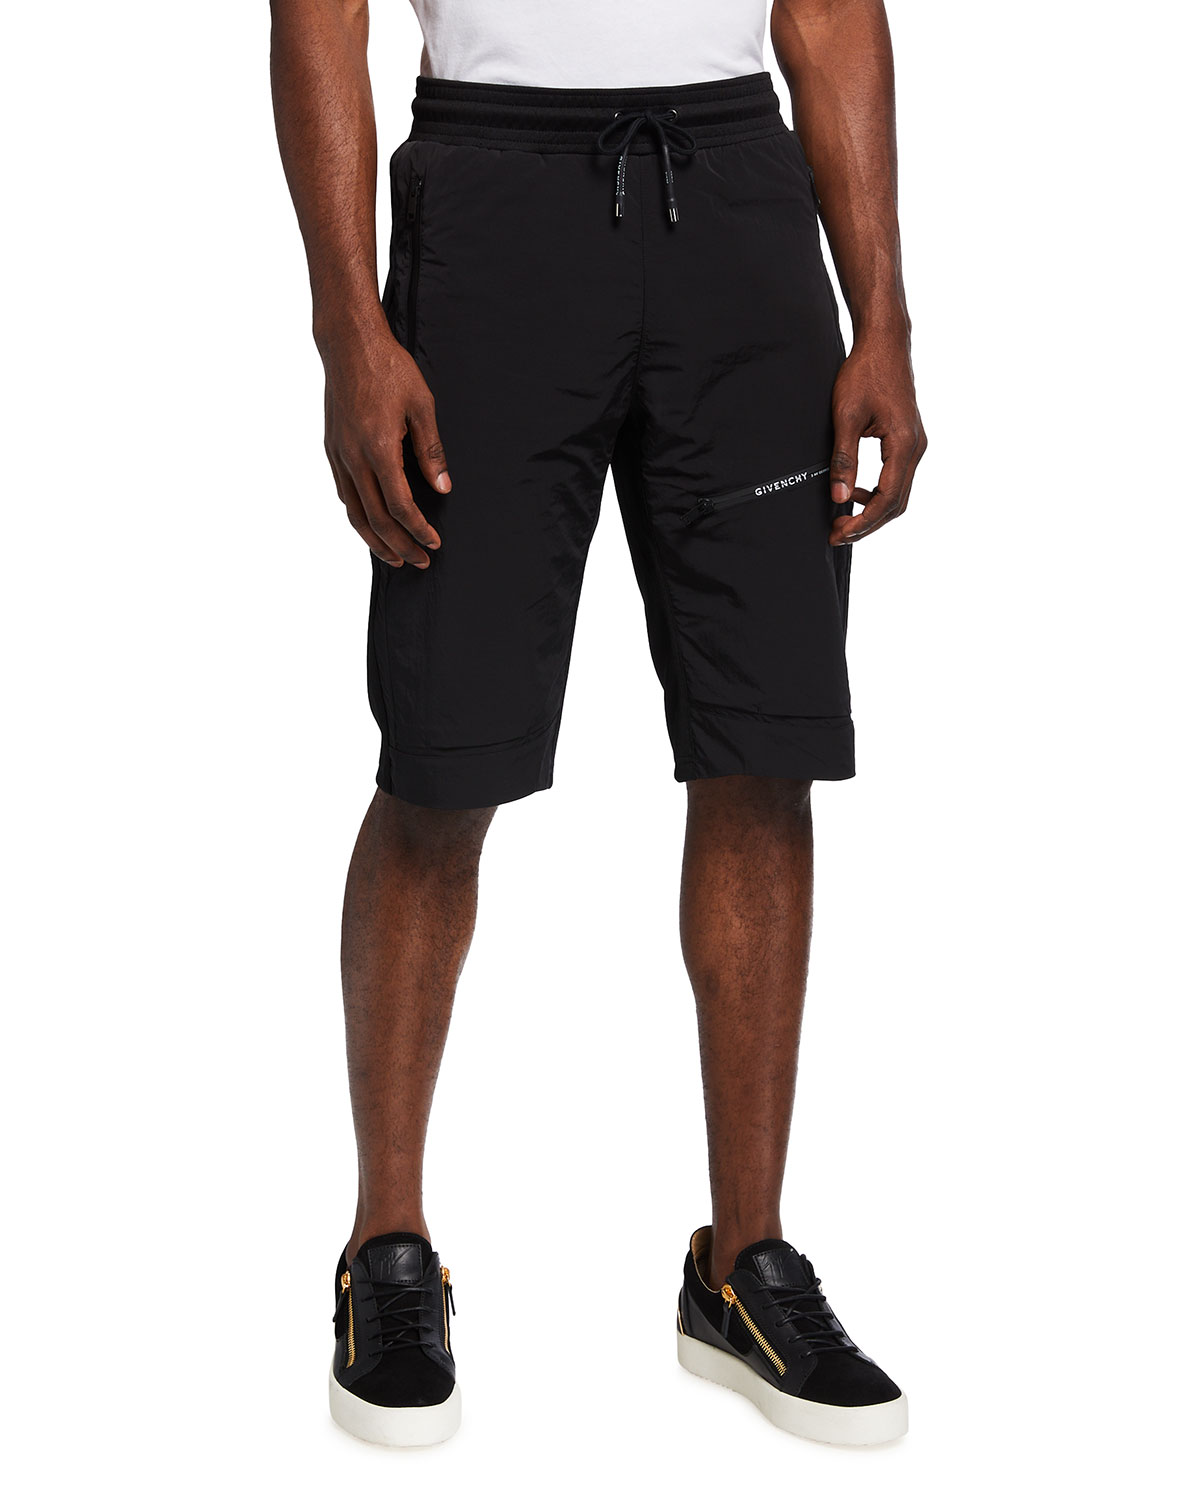 Givenchy MEN'S KNEE-LENGTH ATHLETIC SHORTS